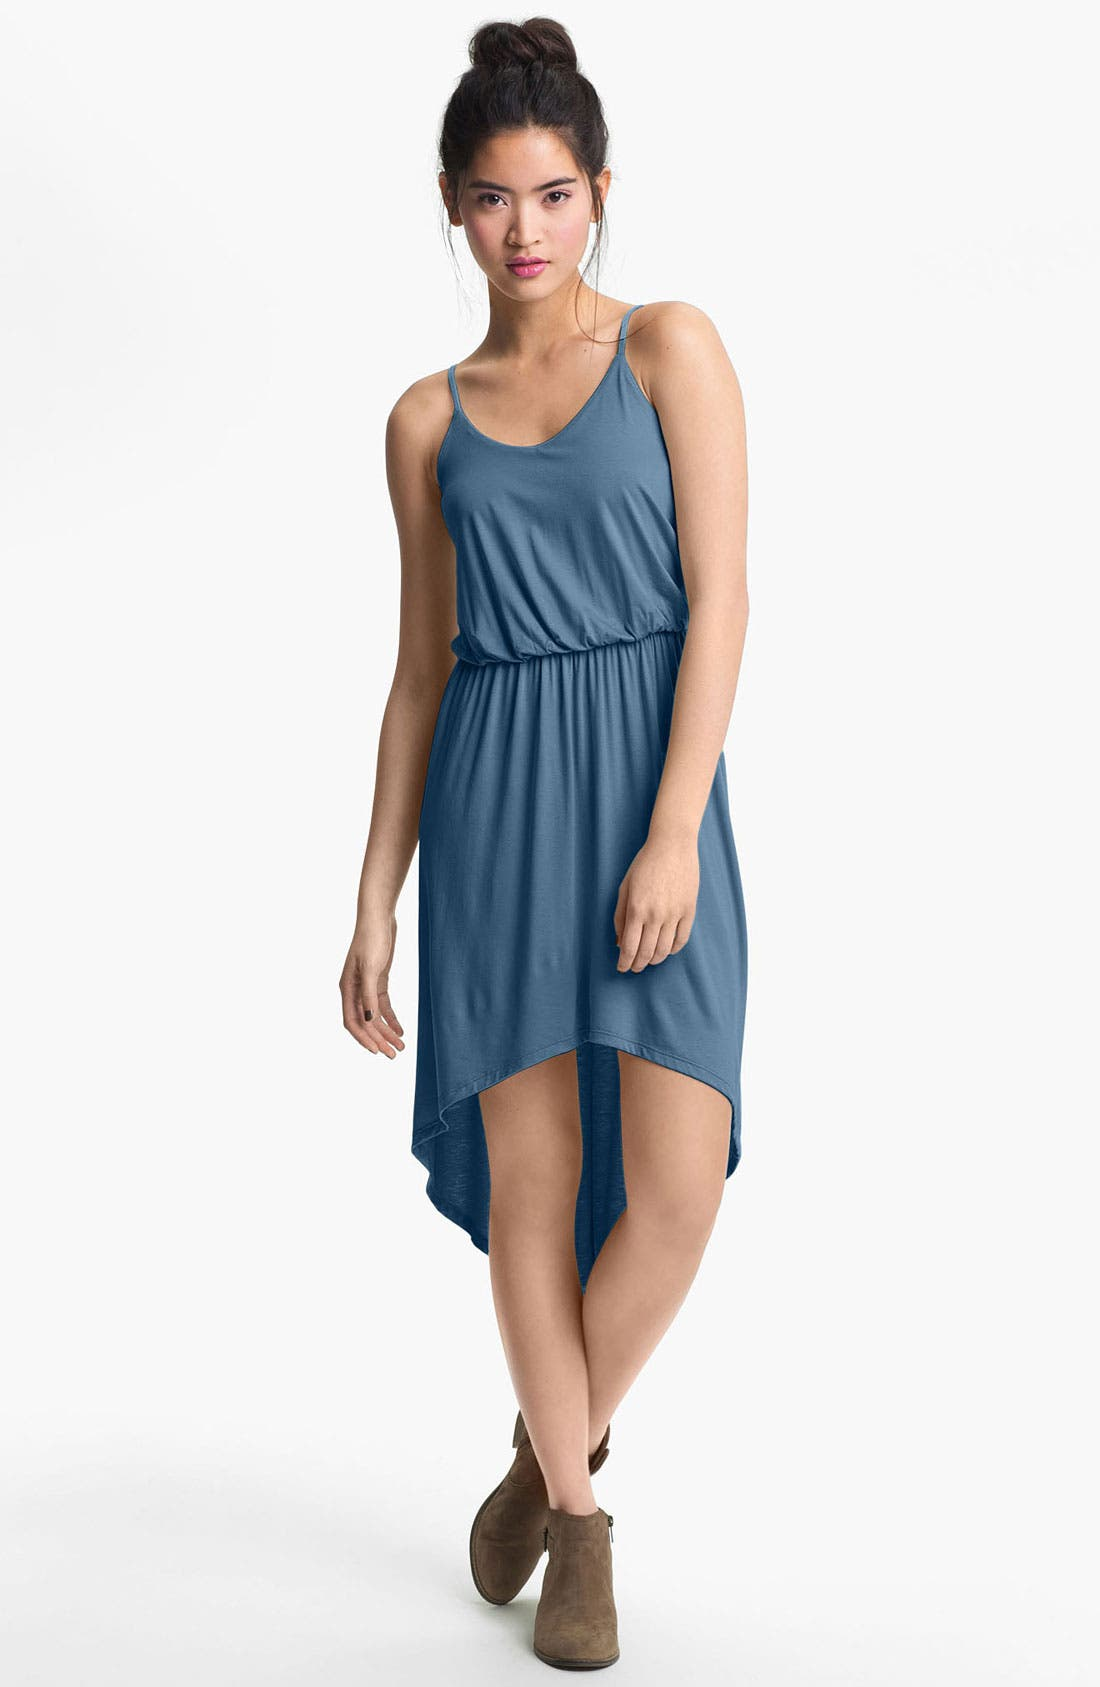 Alternate Image 1 Selected - Lush High/Low Dress (Juniors)